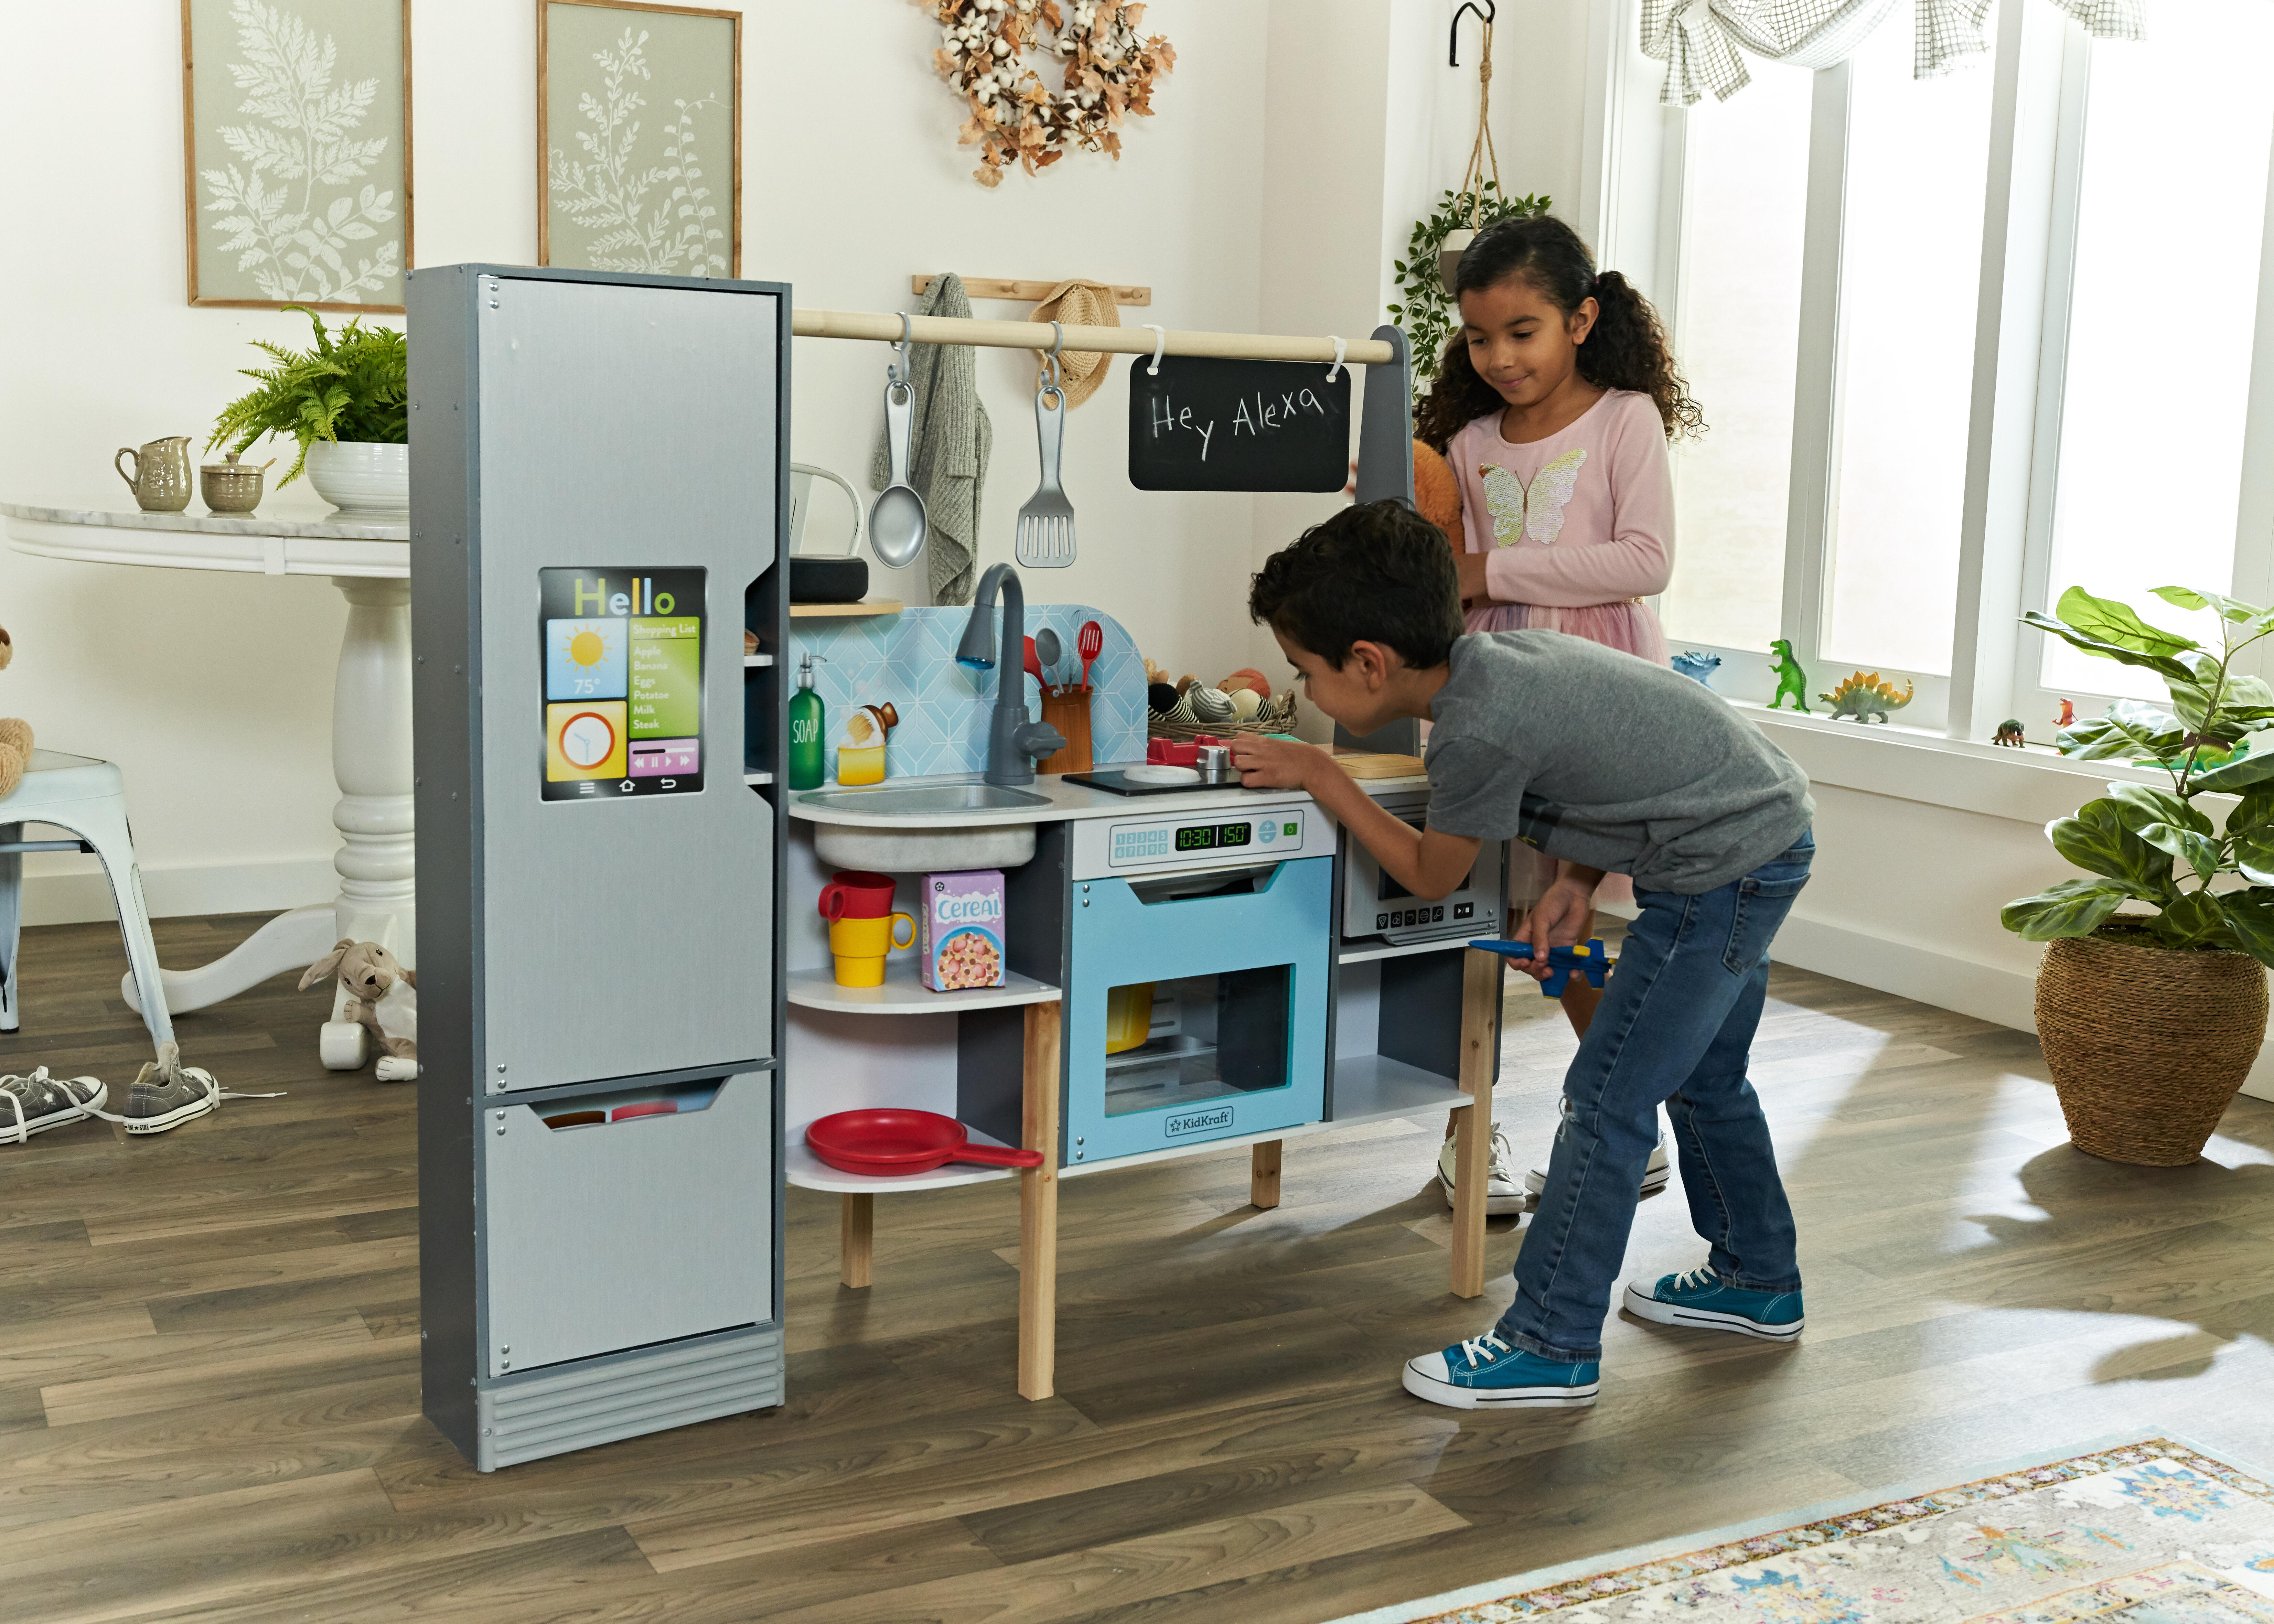 <p>KidKraft makes the Alexa 2-in-1 Kitchen and Market, a $300 playset that interacts with the Amazon Alexa voice assistant (parent's Echo not included).</p>